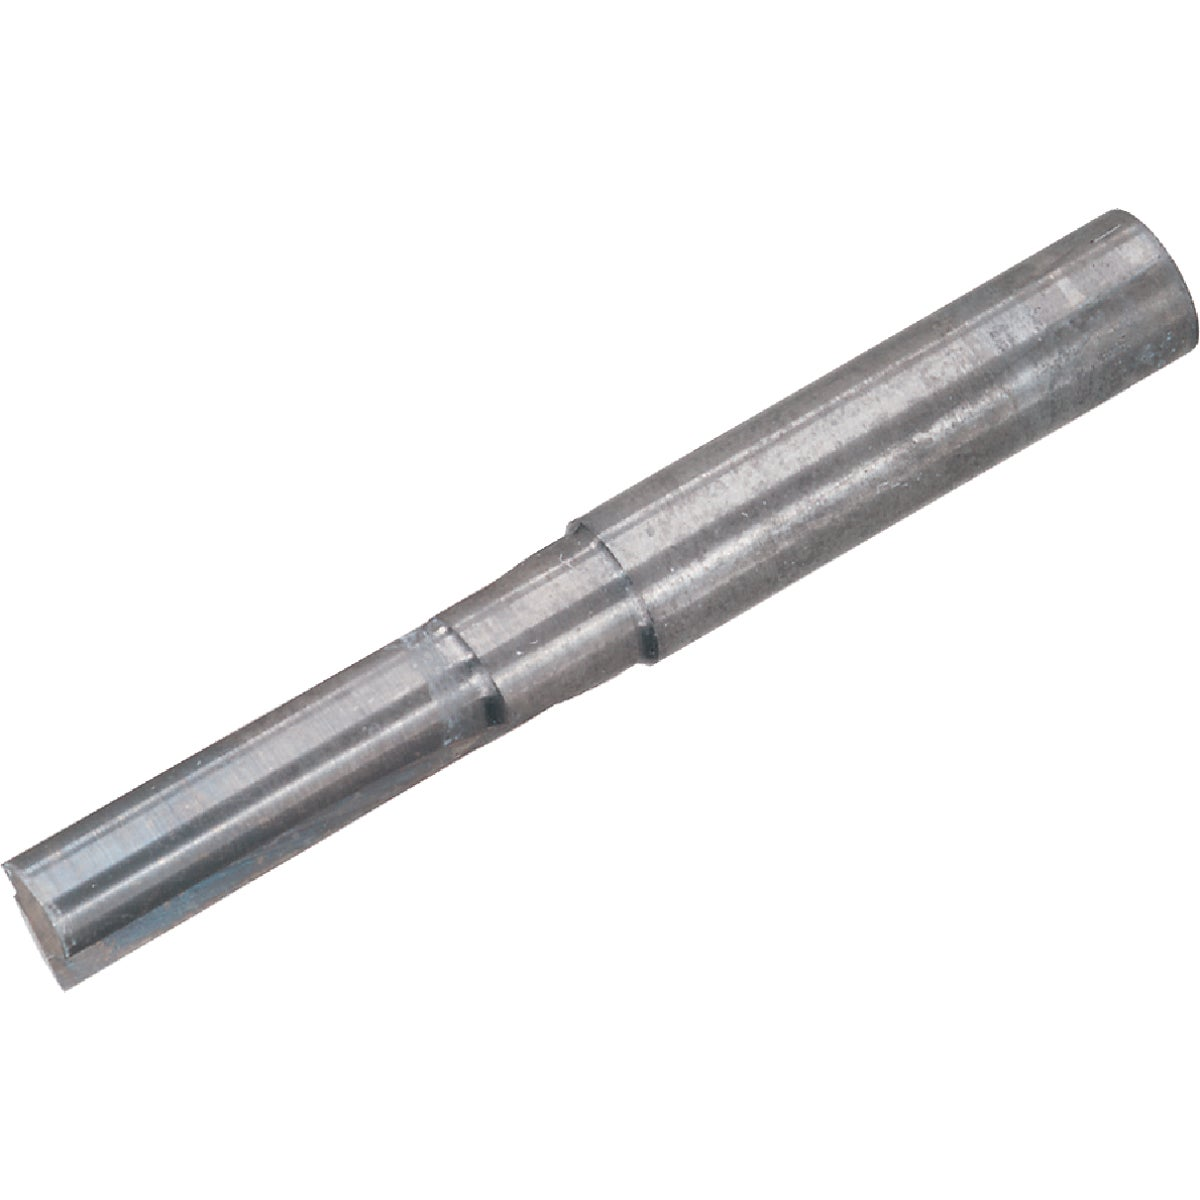 "7/32"" 2-FLT TRIM BIT - 04-111 by Freud Inc"